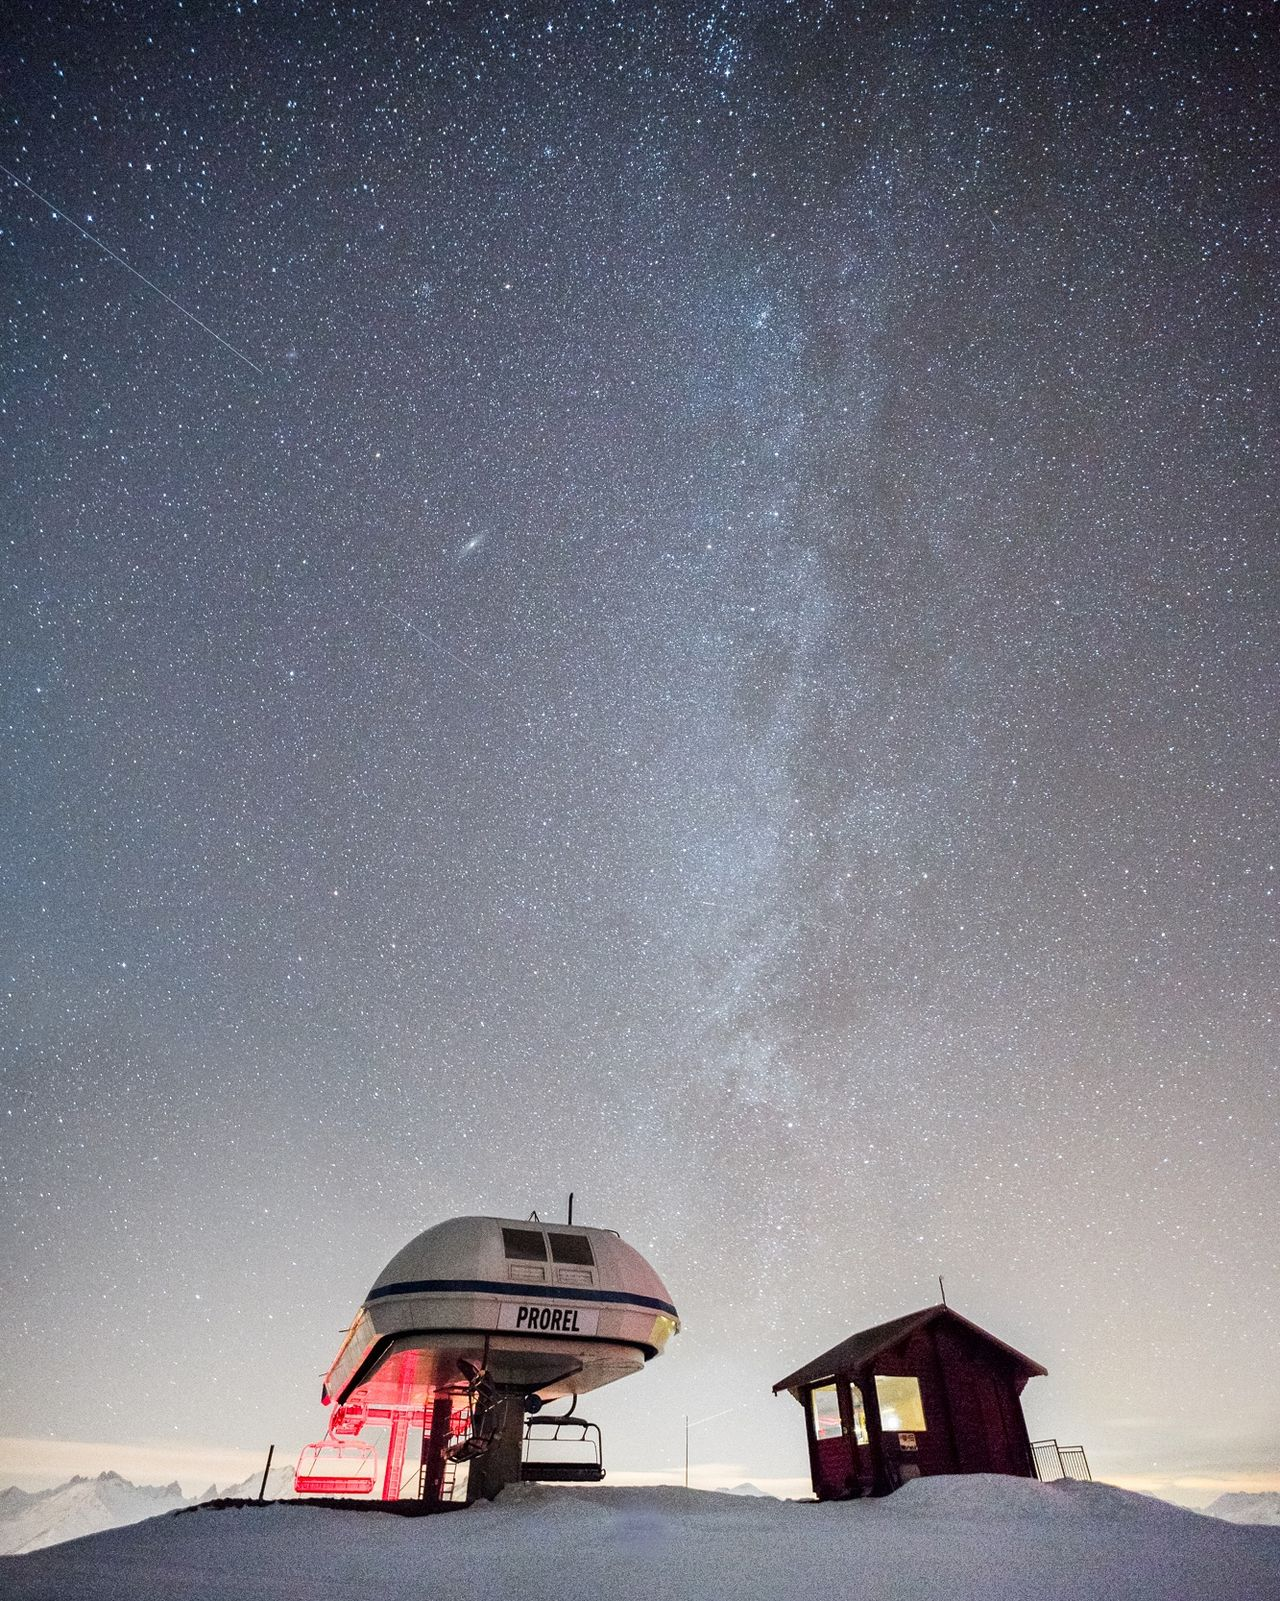 Milkyway Voielactee Prorel Serre Chevalier  Serrechevalier Laowa15mm Photo De Nuit Nightphotography Space And Astronomy Star Sky Constellation Beauty In Nature Night Astronomy Star - Space Space Architecture Travel Destinations Milky Way Research Sea Nature No People Outdoors